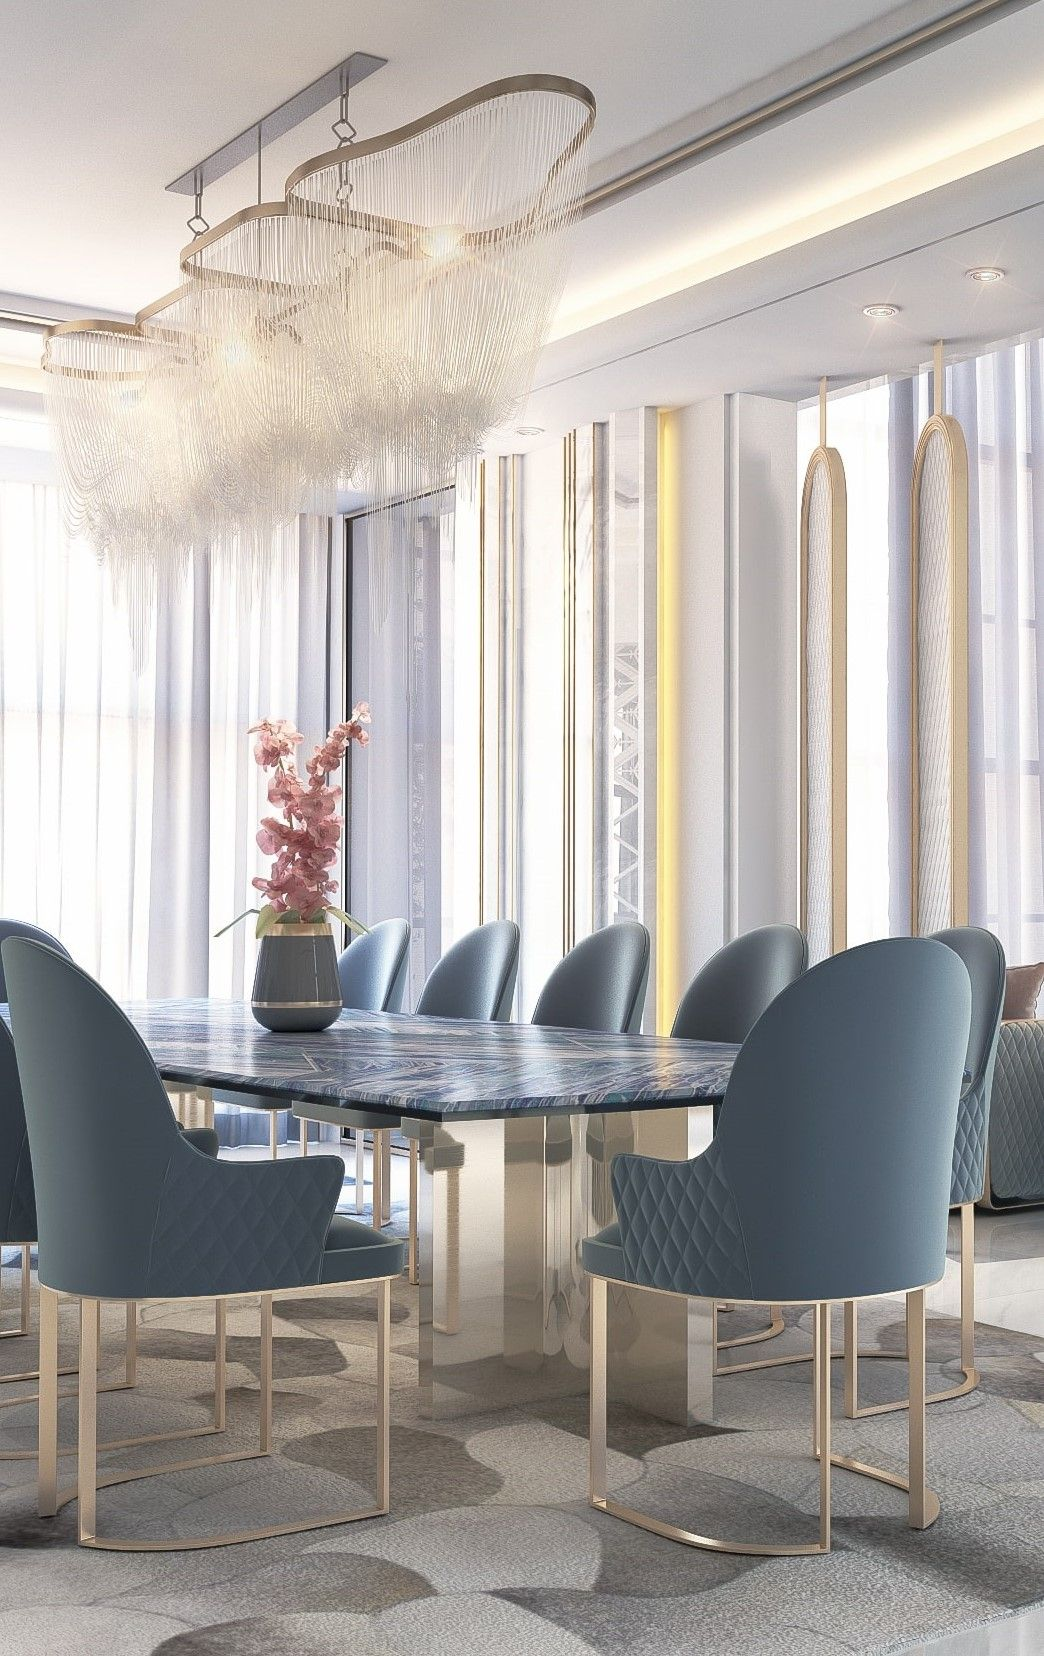 Dining Room In Private Villa Dubai By Maher Mouhajer